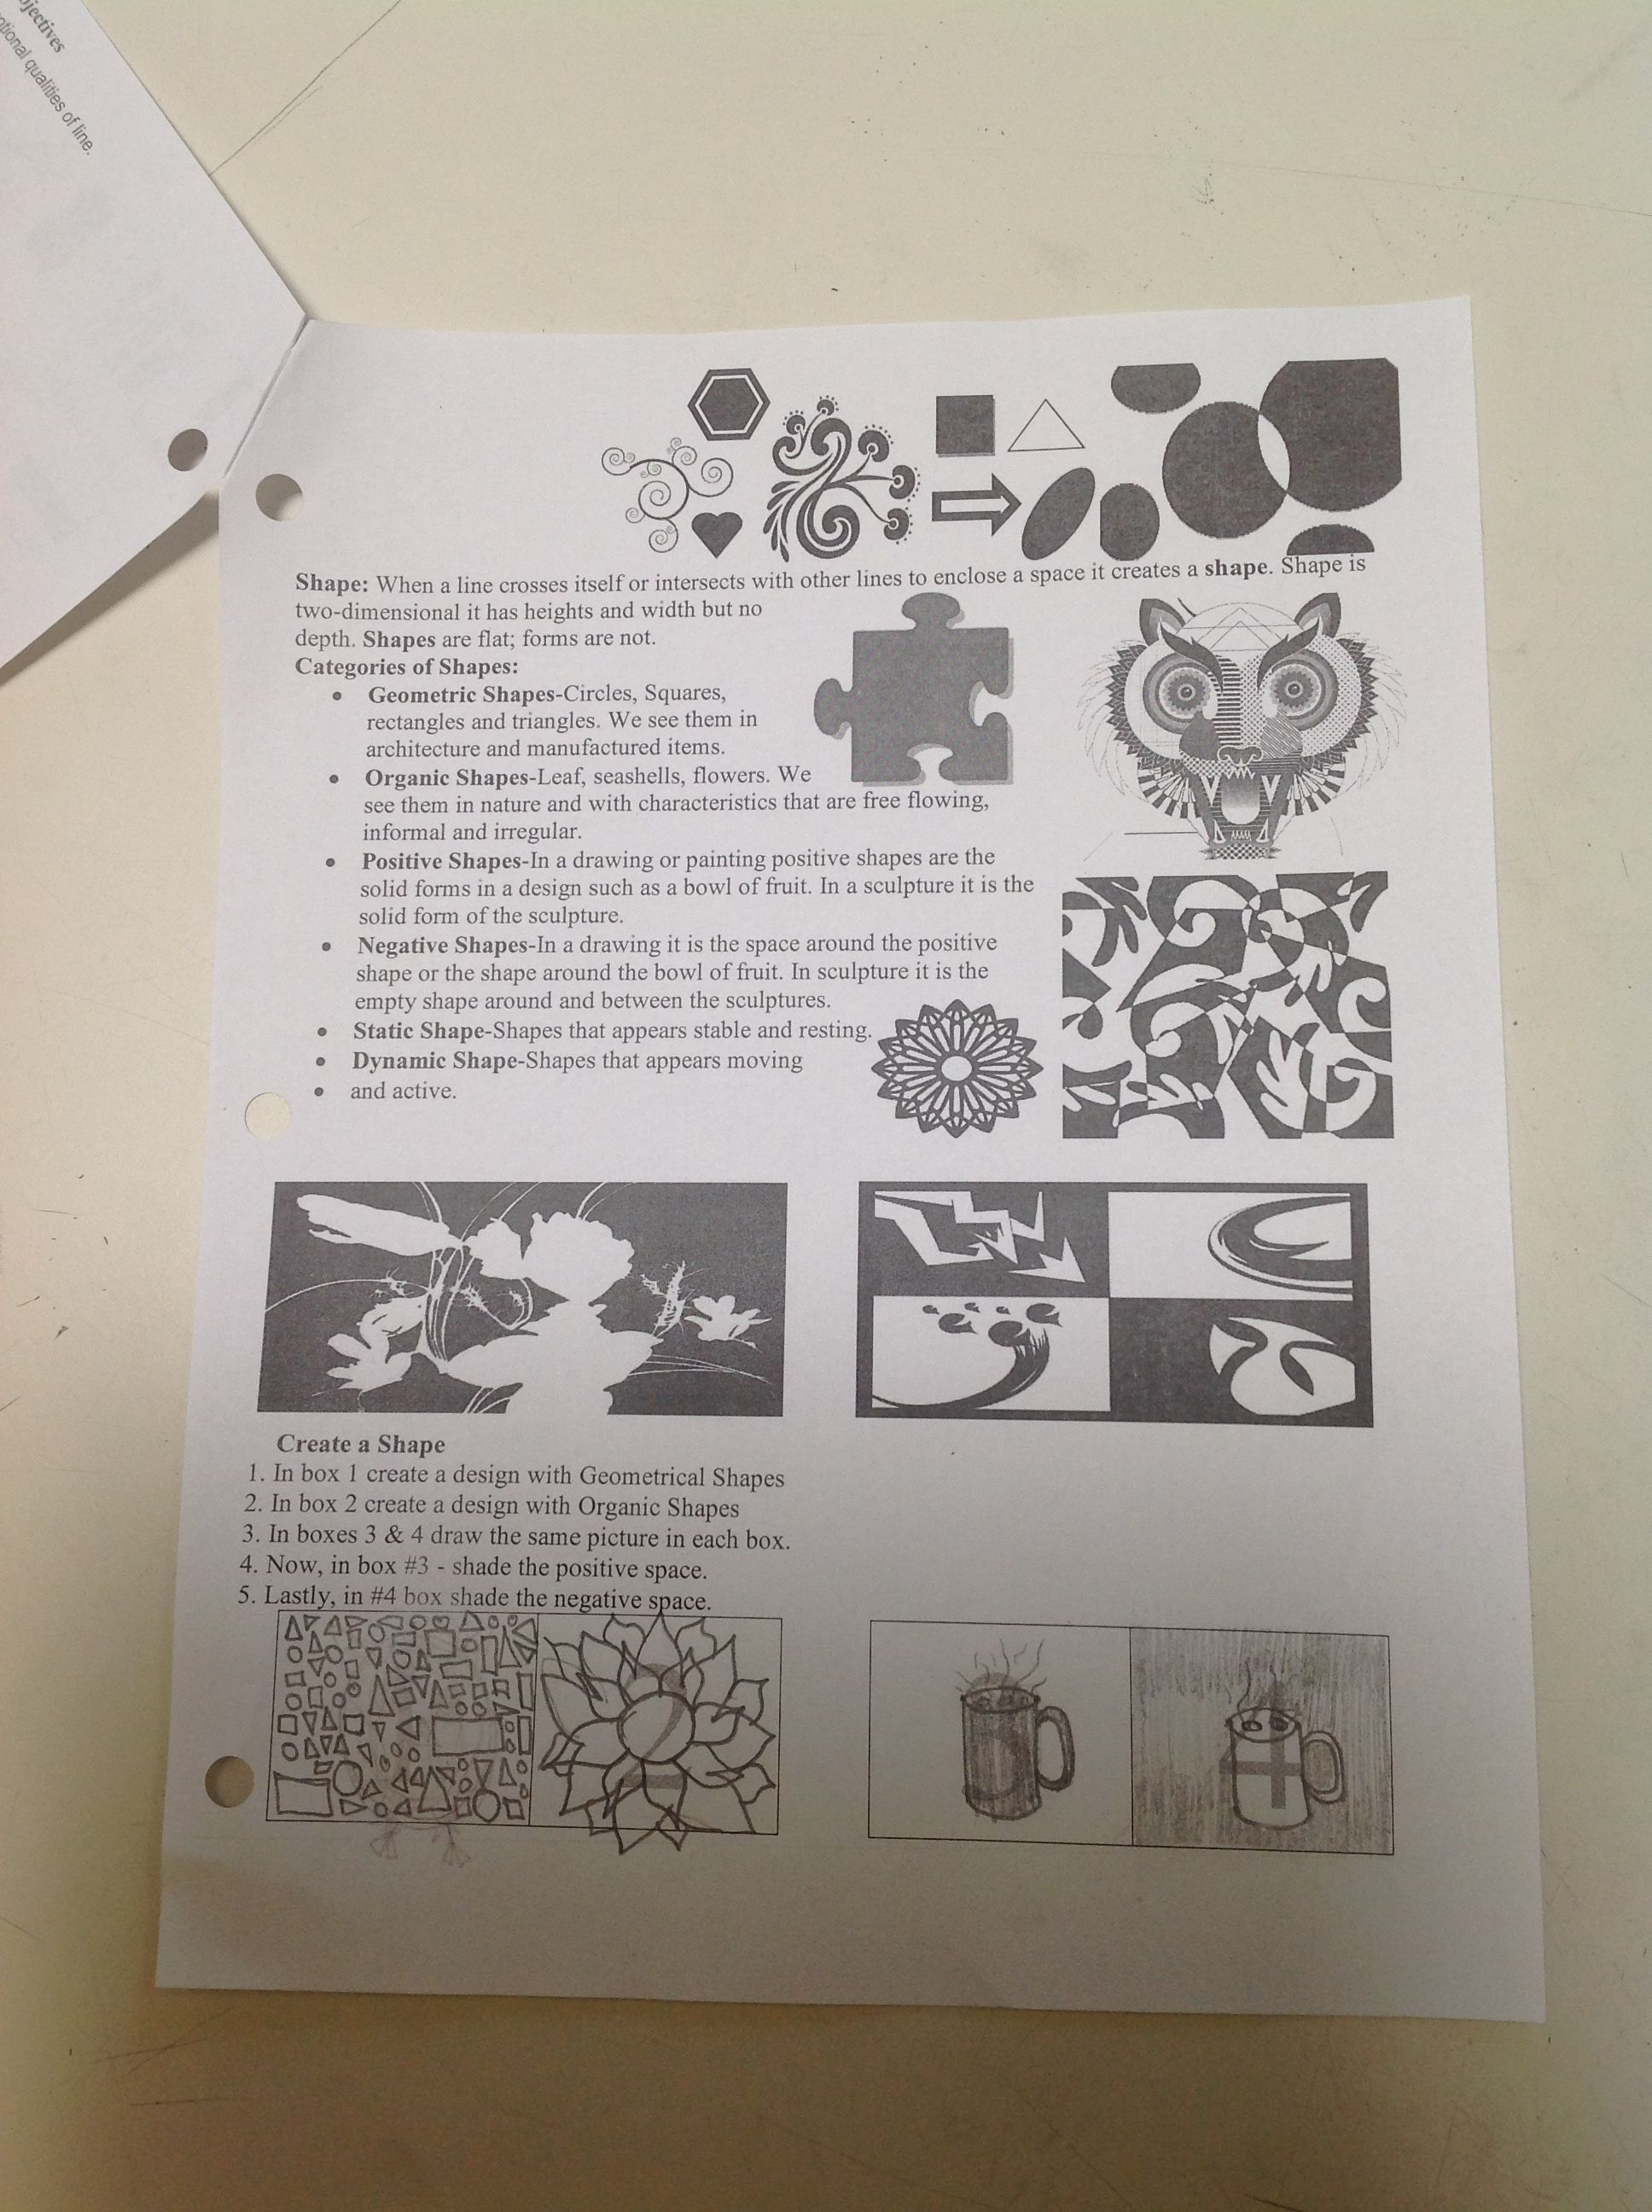 Worksheet 10 25 18